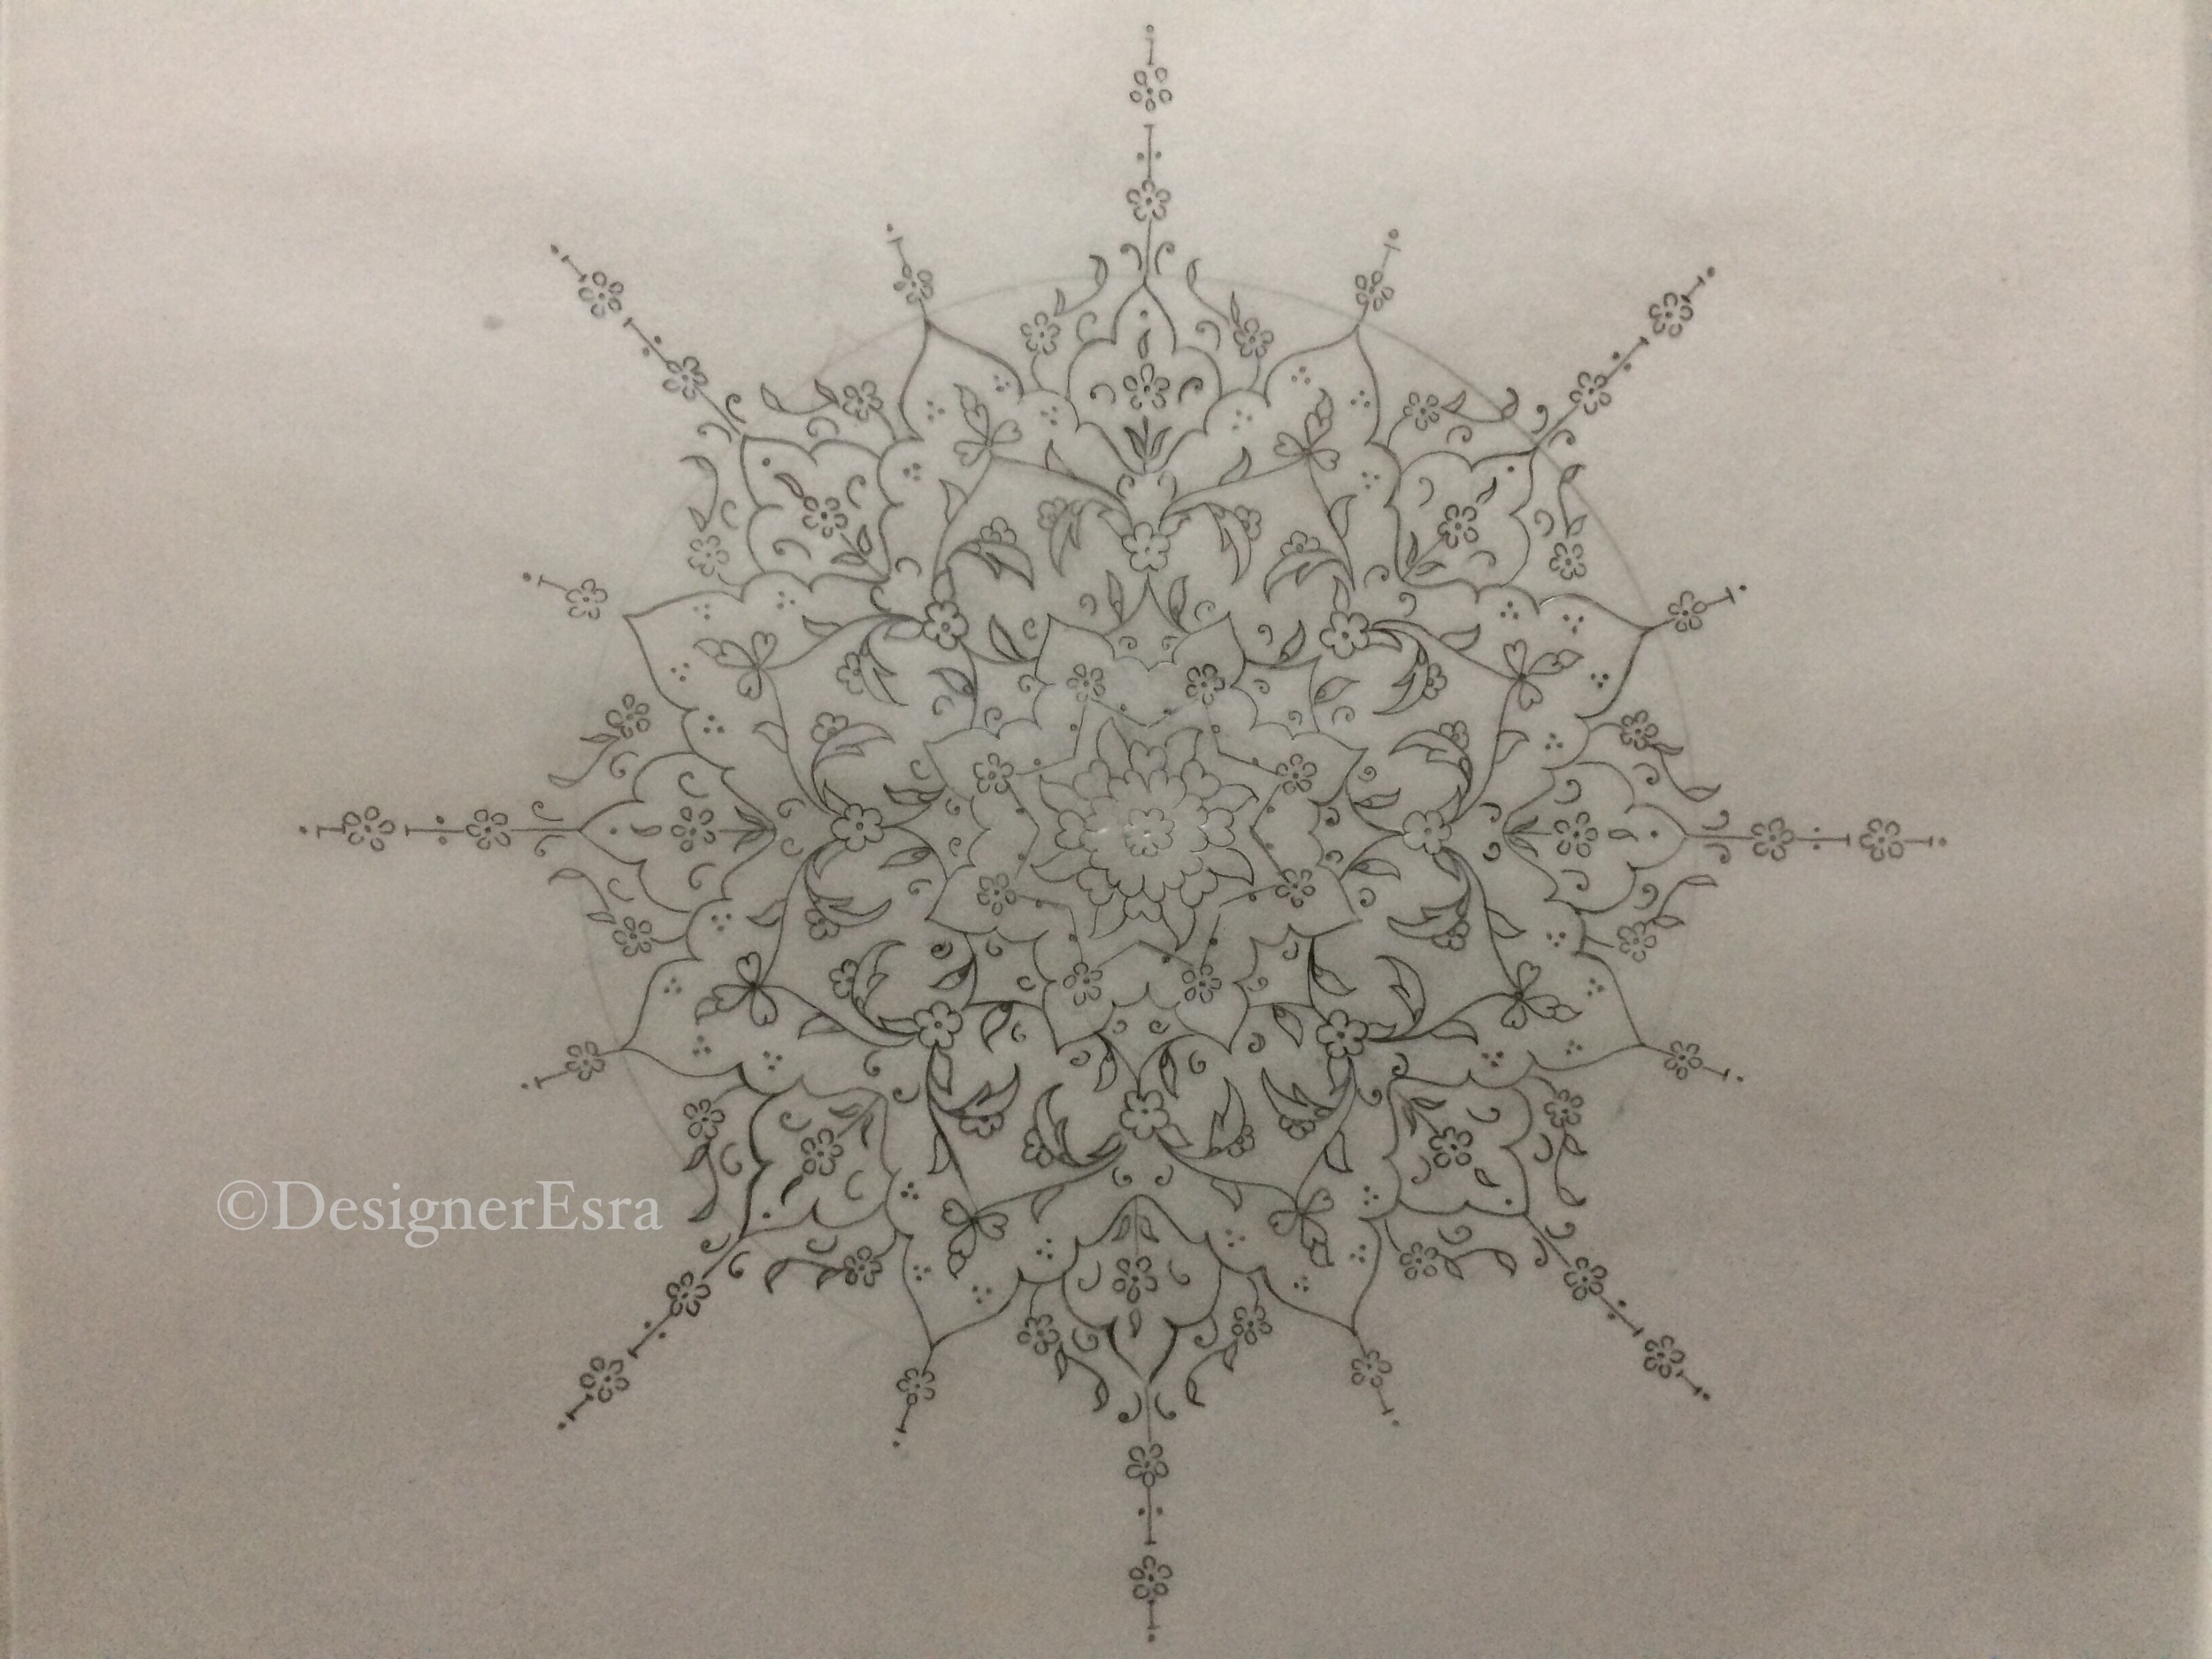 Illuminated Sun Design